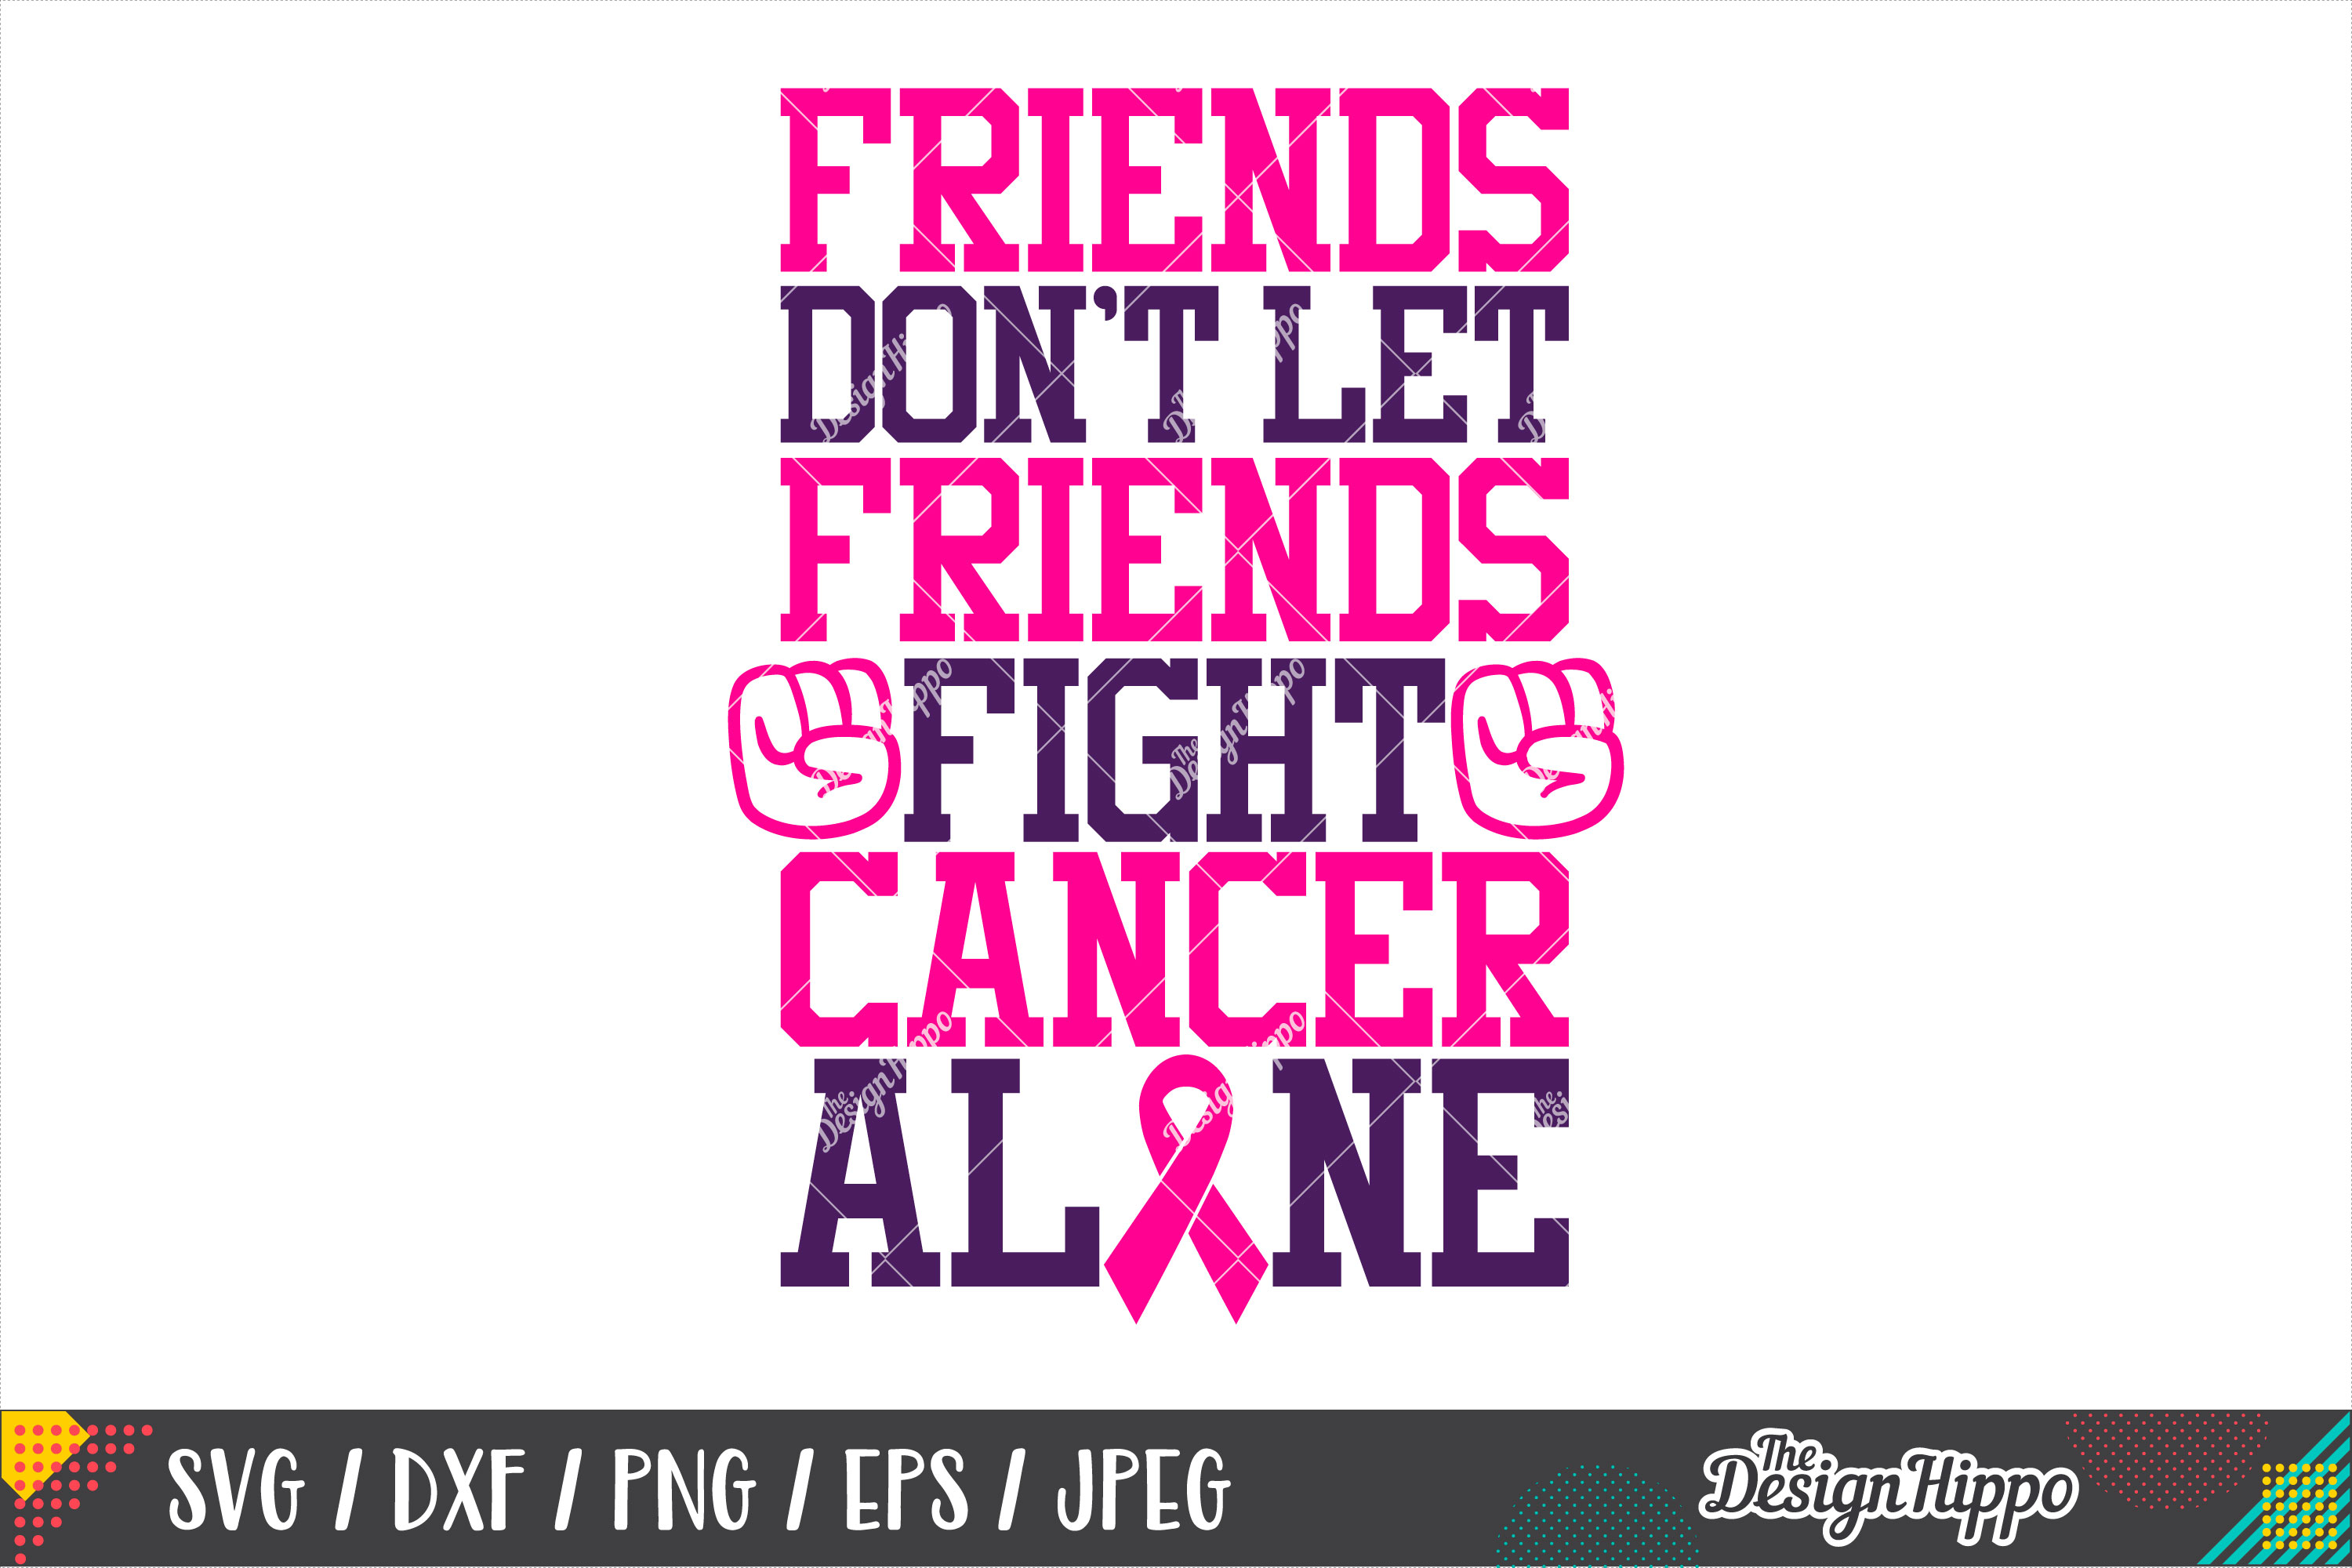 Friends Don't Let Friends Fight Cancer Alone SVG DXF EPS PNG example image 1